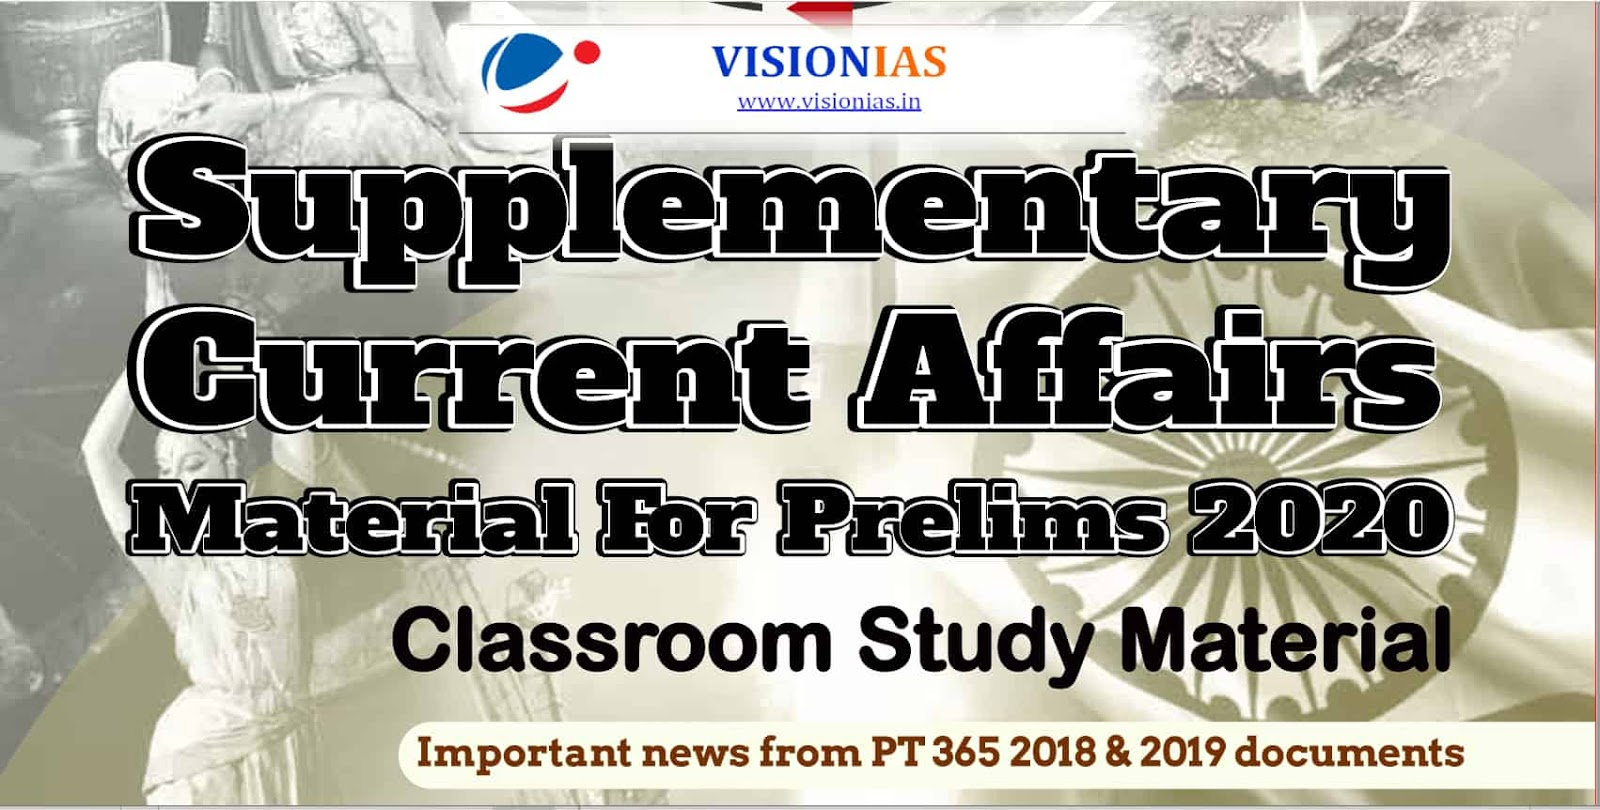 Vision IAS Supplementary Current Affairs 2020